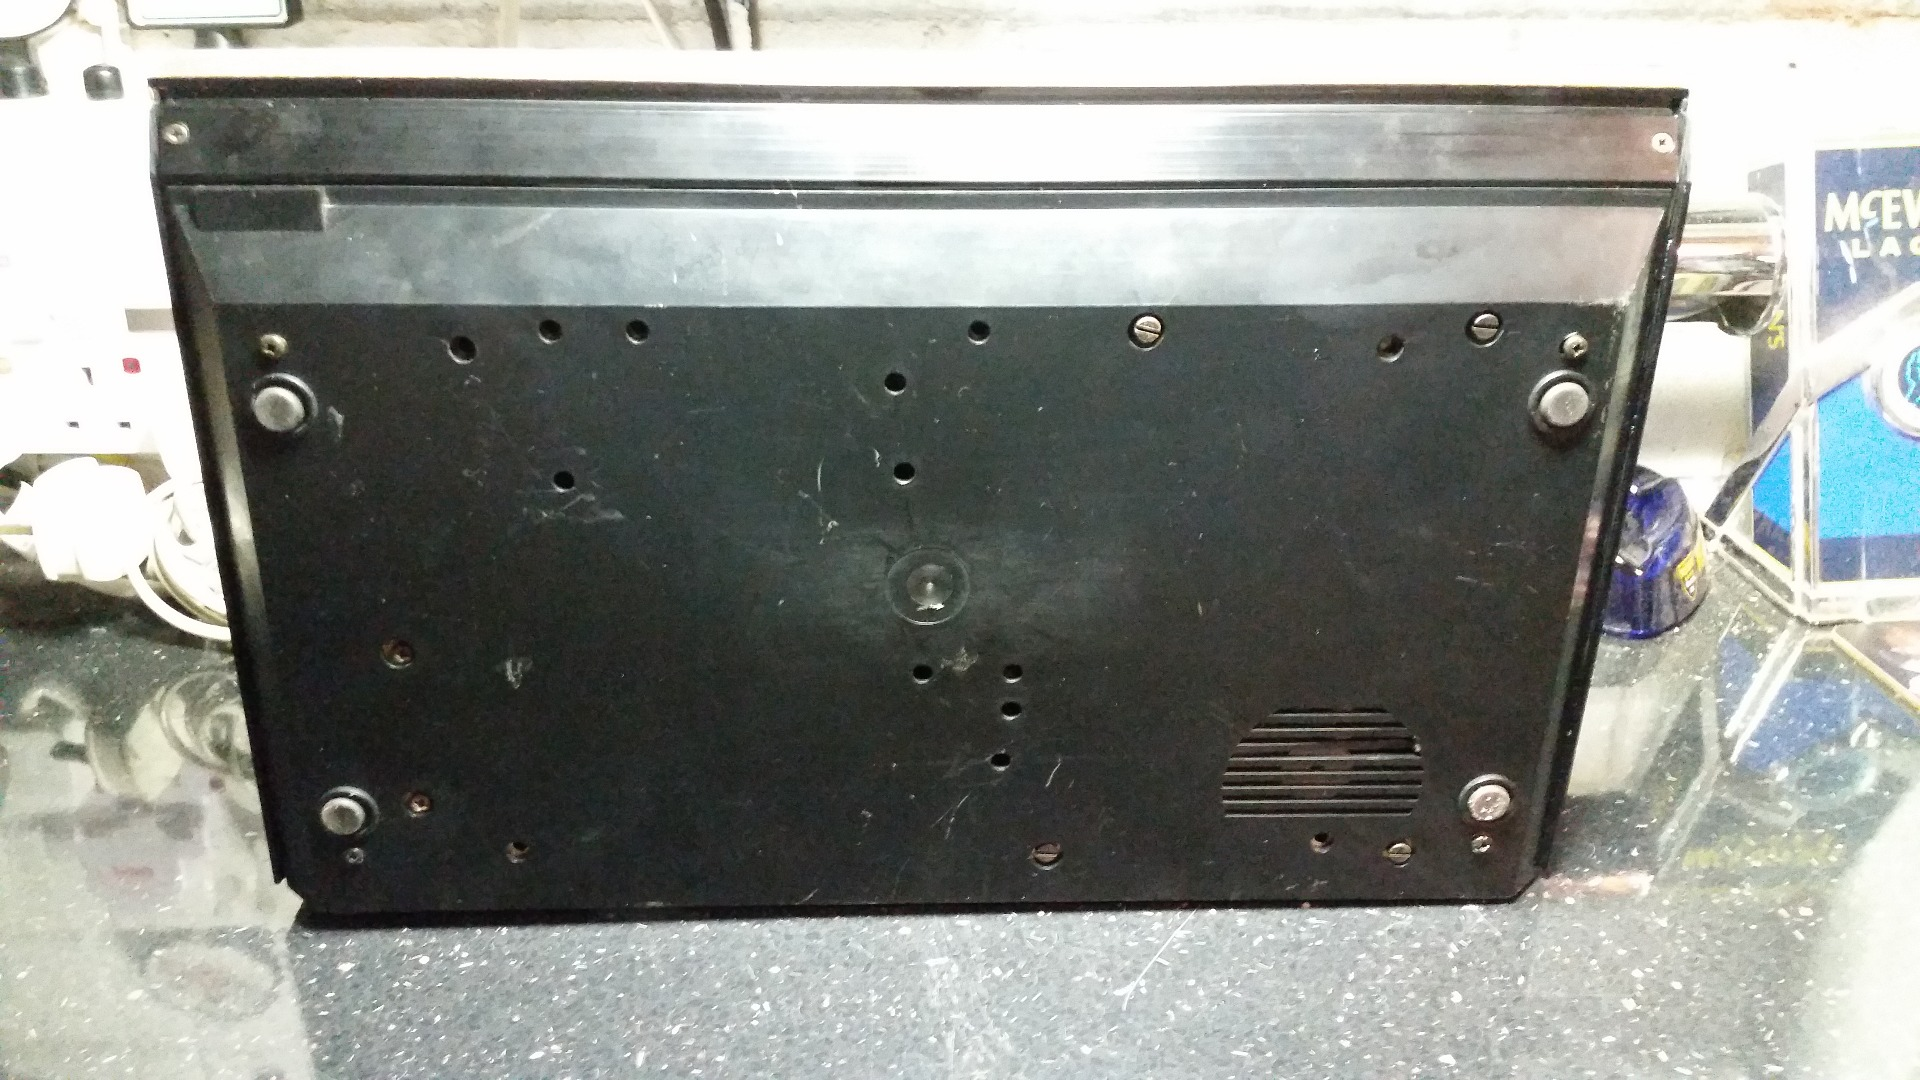 Picture of The Case Part 1